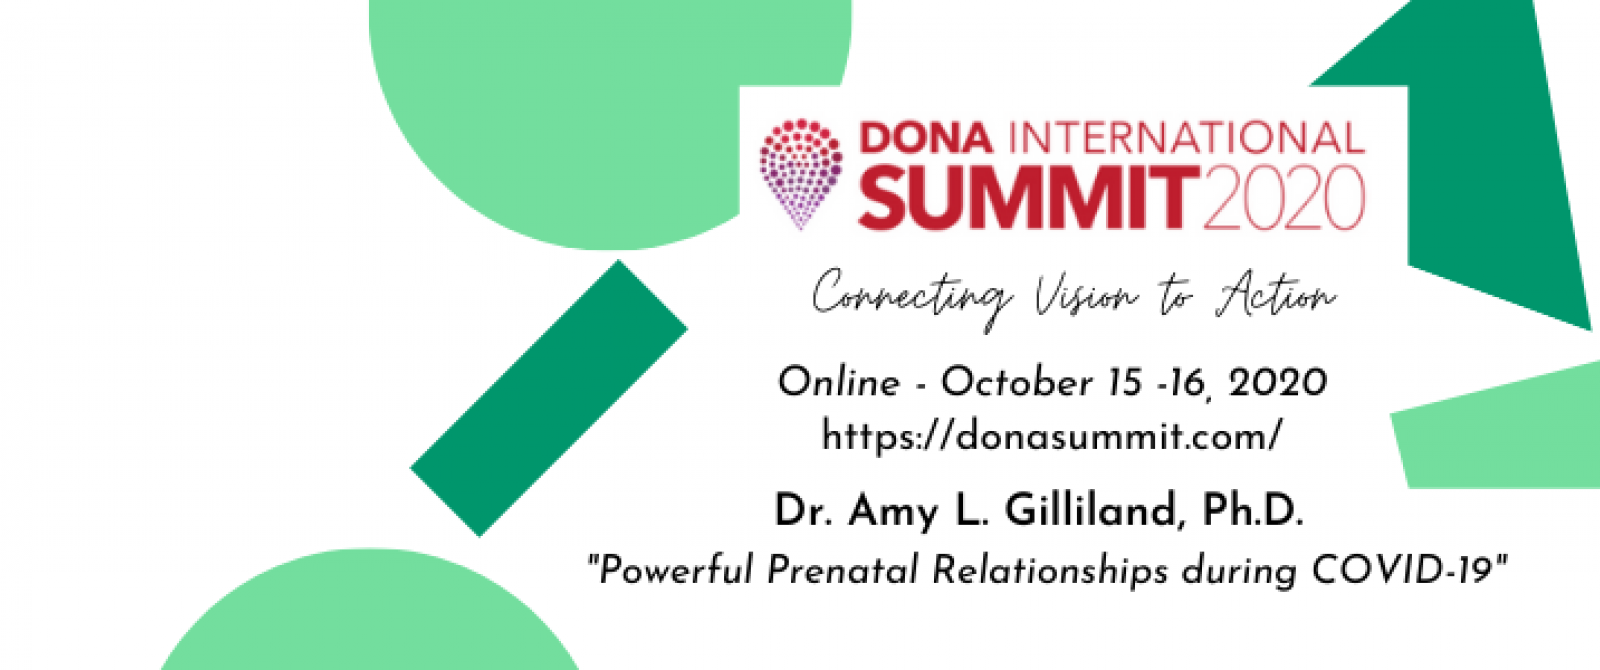 DONA 2020 Online Summit - png